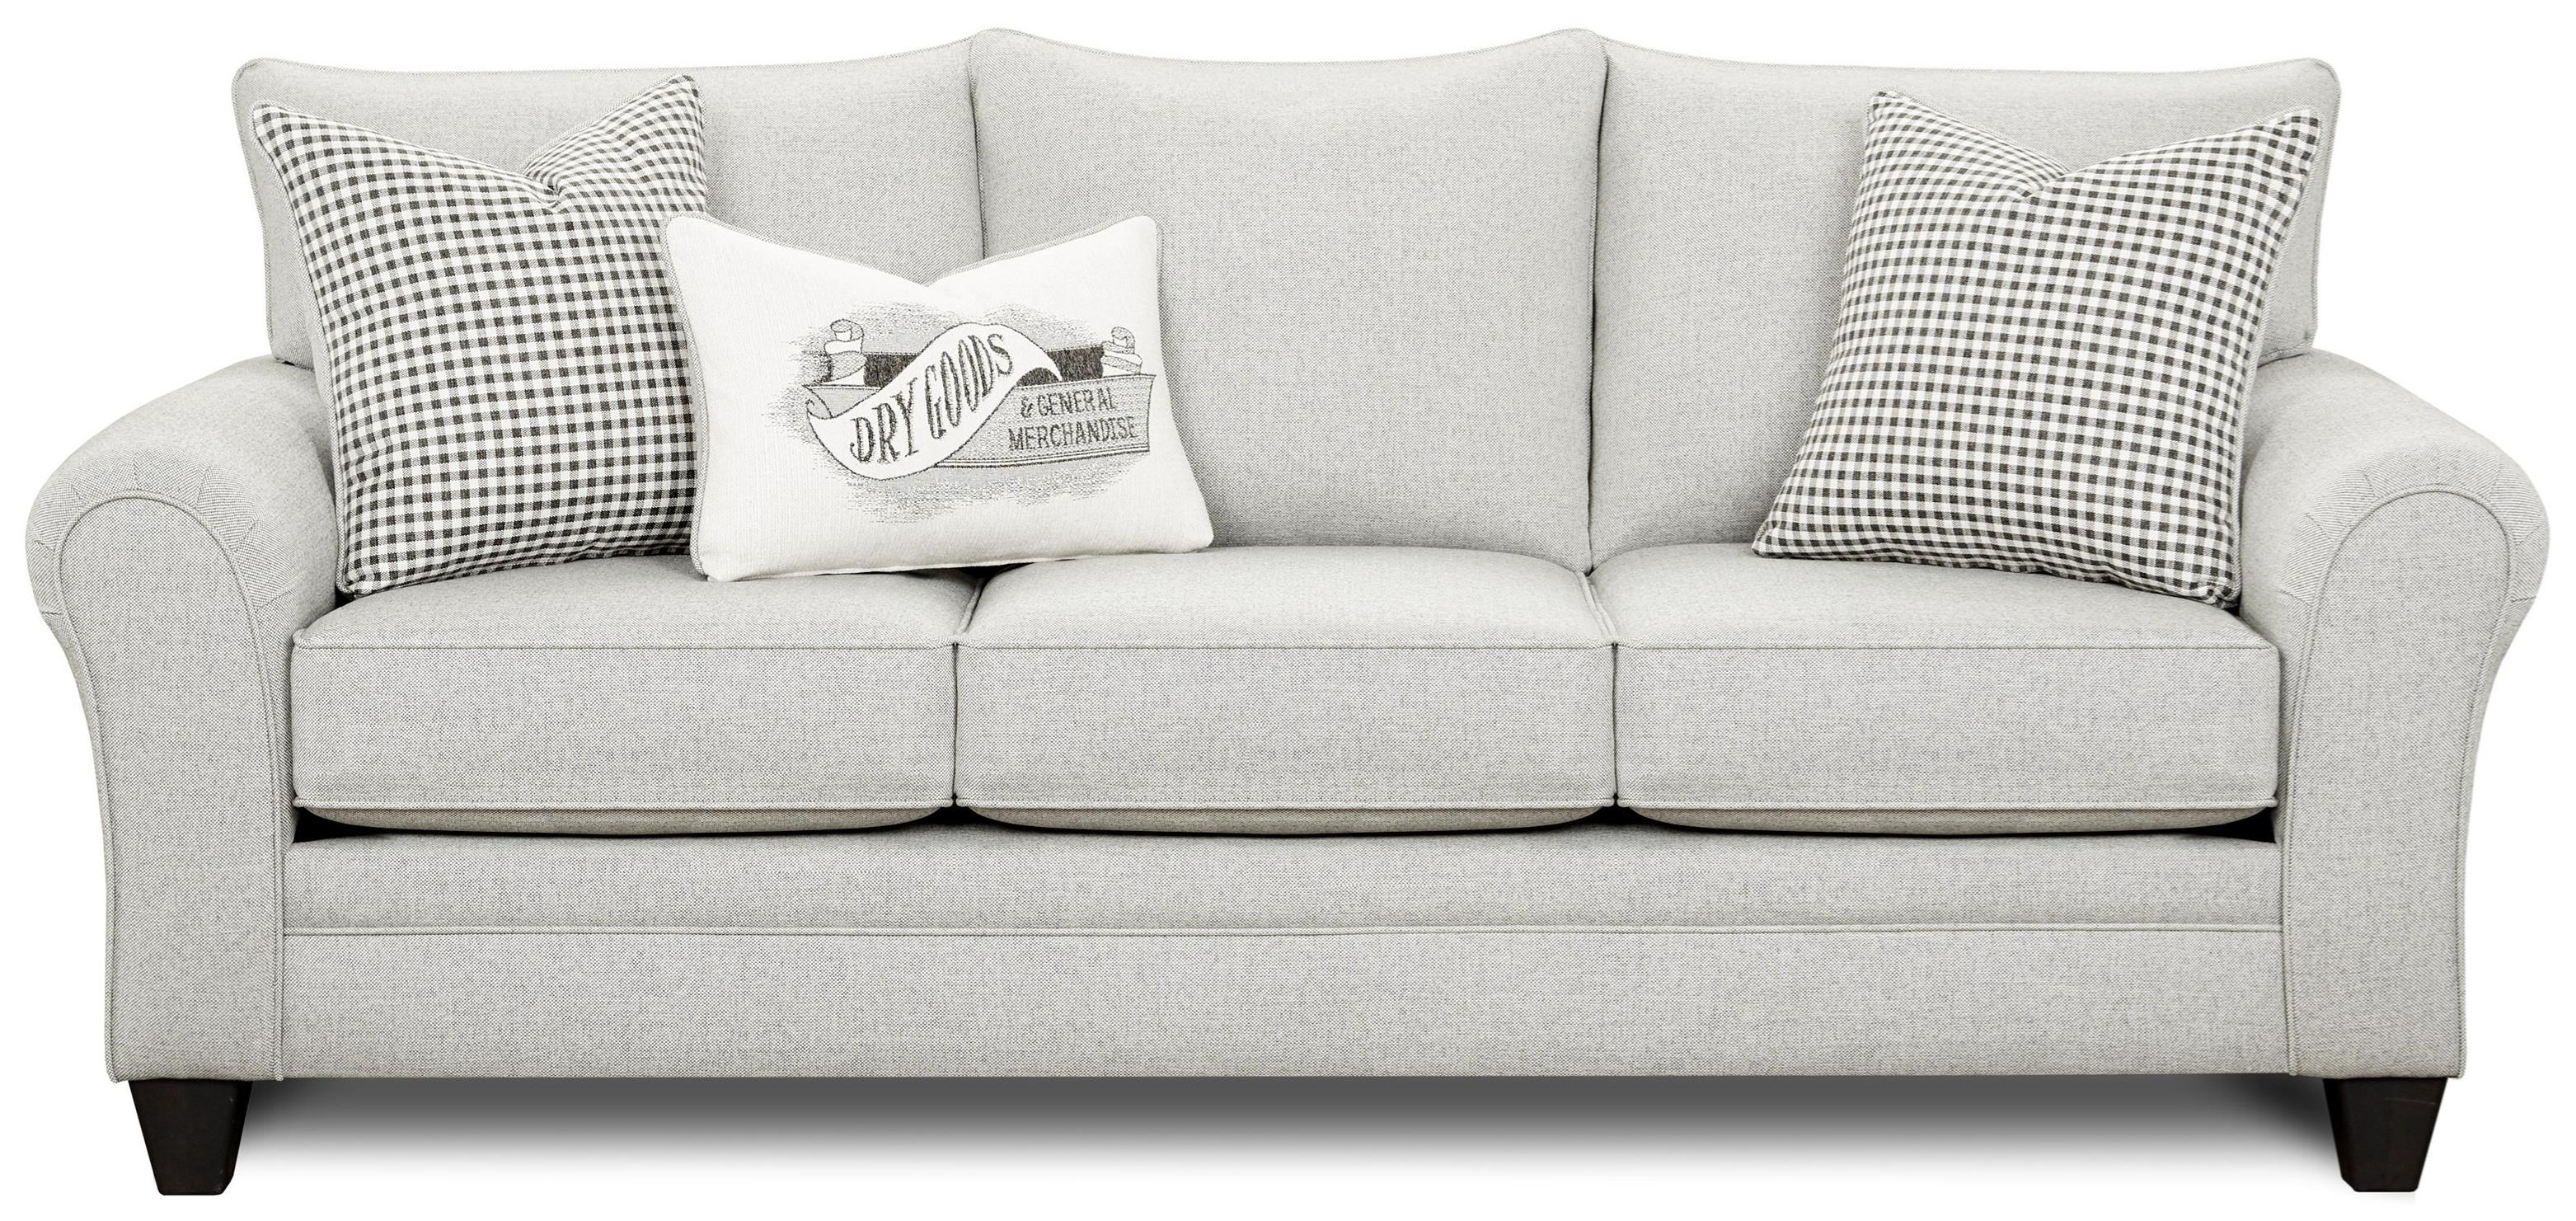 44-00 Sleeper Sofa by FN at Lindy's Furniture Company